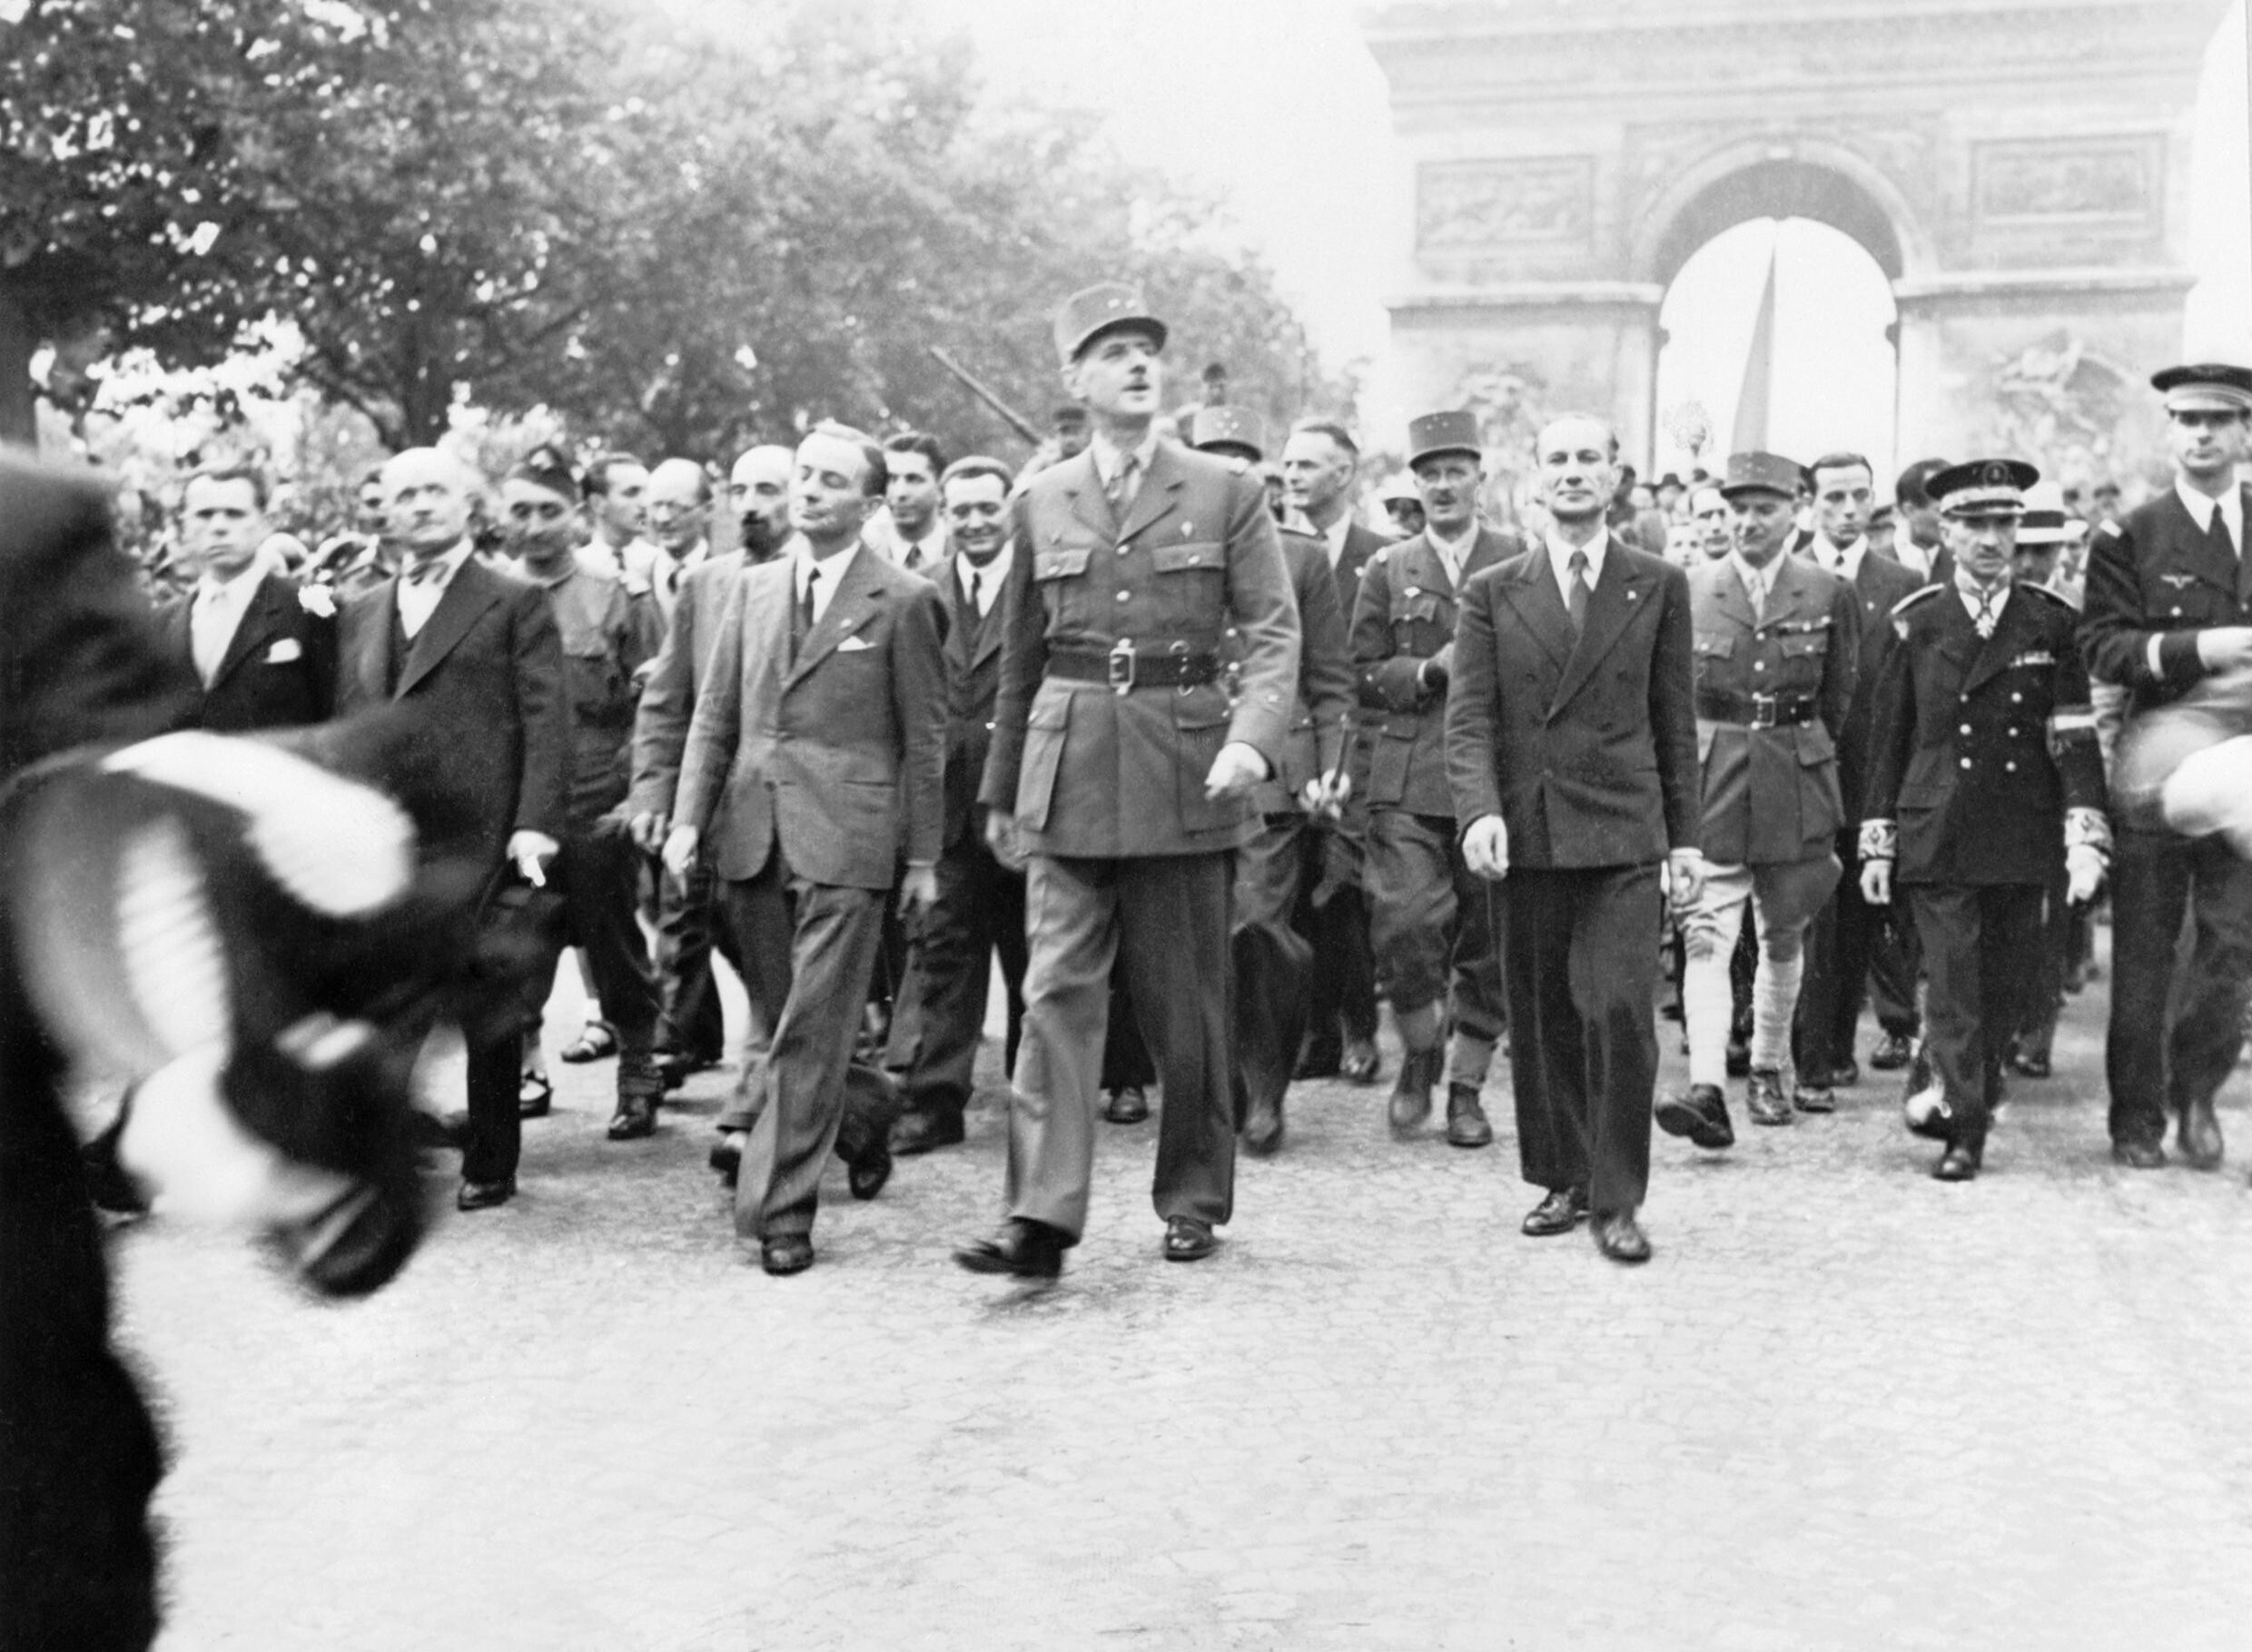 General Charles de Gaulle and his entourage set off from the Arc de Triumphe down the Champs Elysees